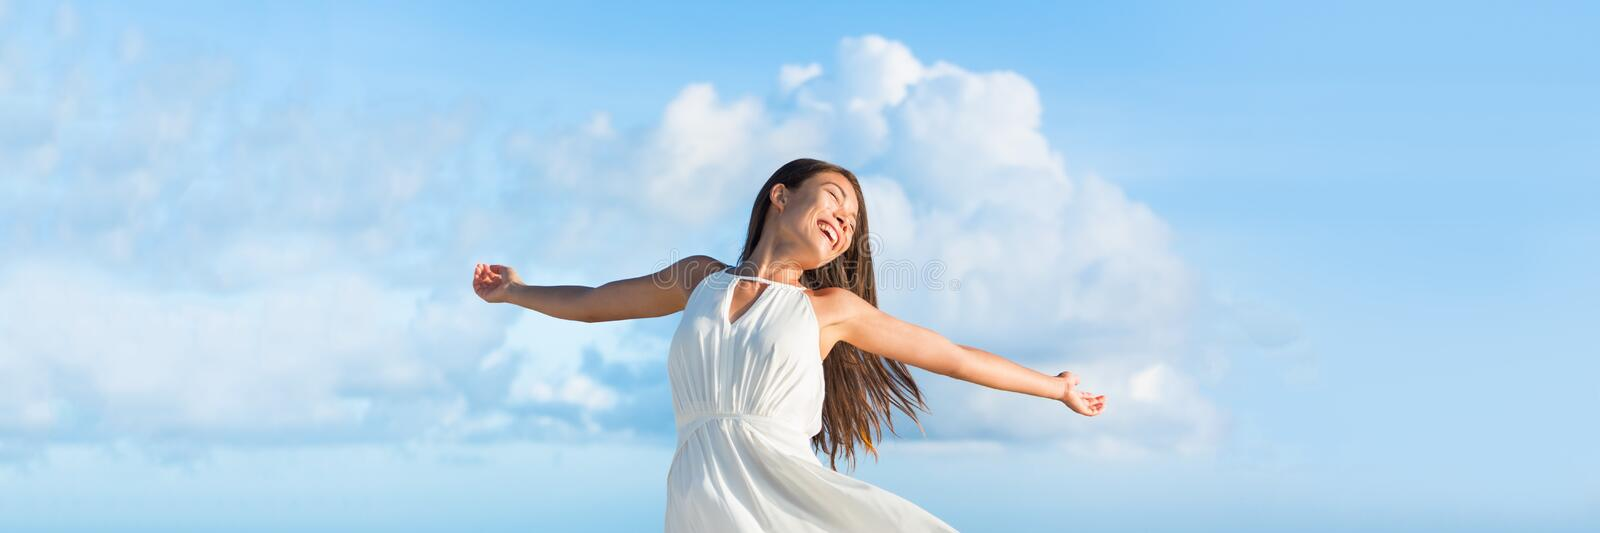 Carefee woman with open arms in freedom banner royalty free stock photos